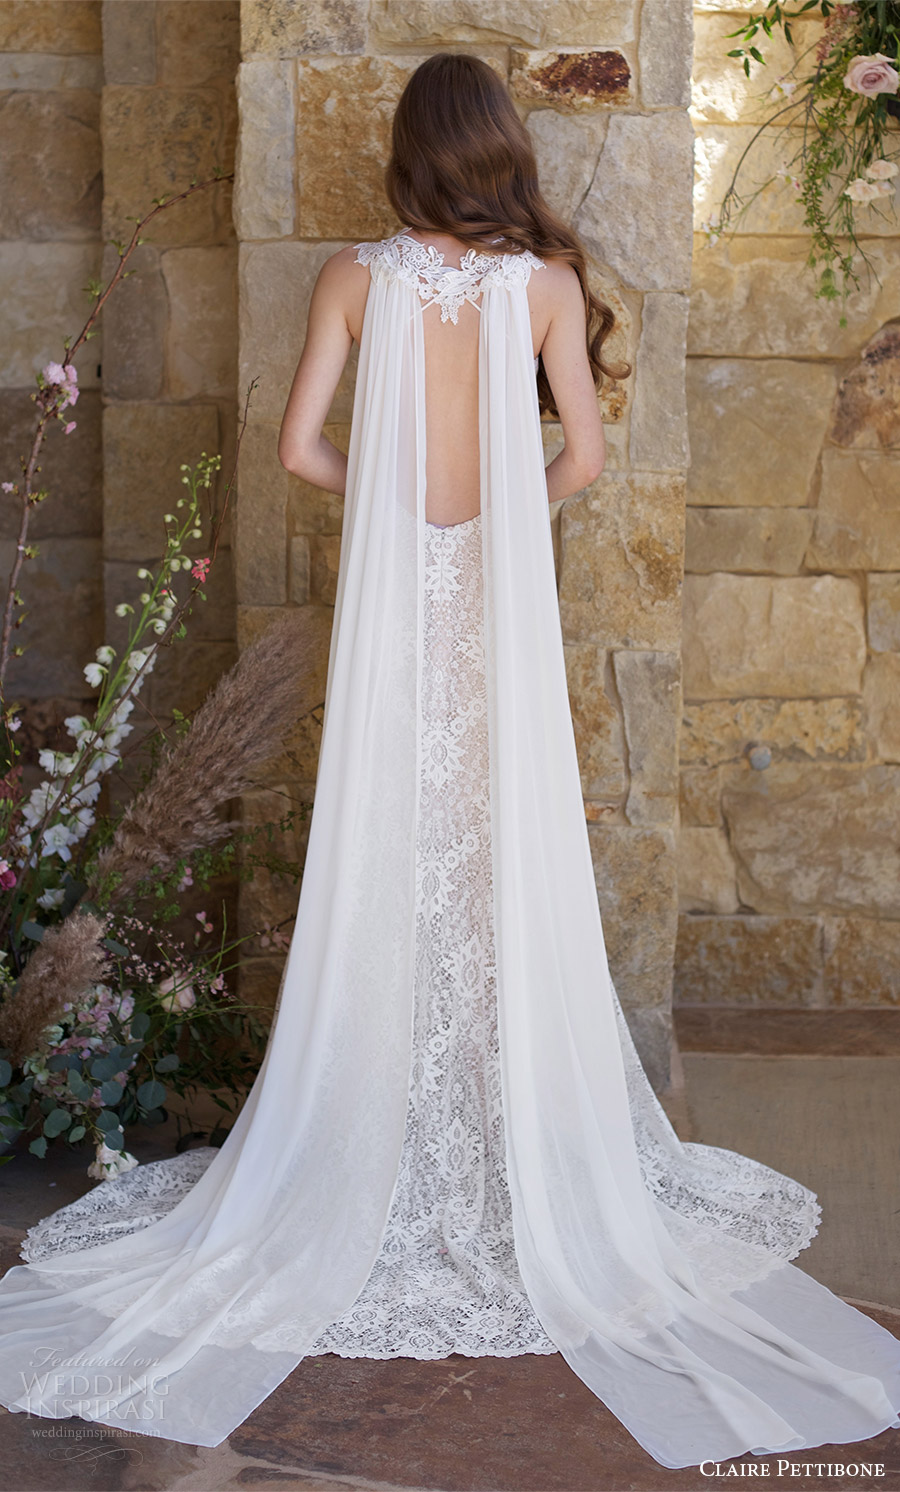 claire pettibone spring 2018 bridal sleeveless lace straps sweetheart lace mermaid wedding dress ( saratoga) bv open back train cape boho romantic